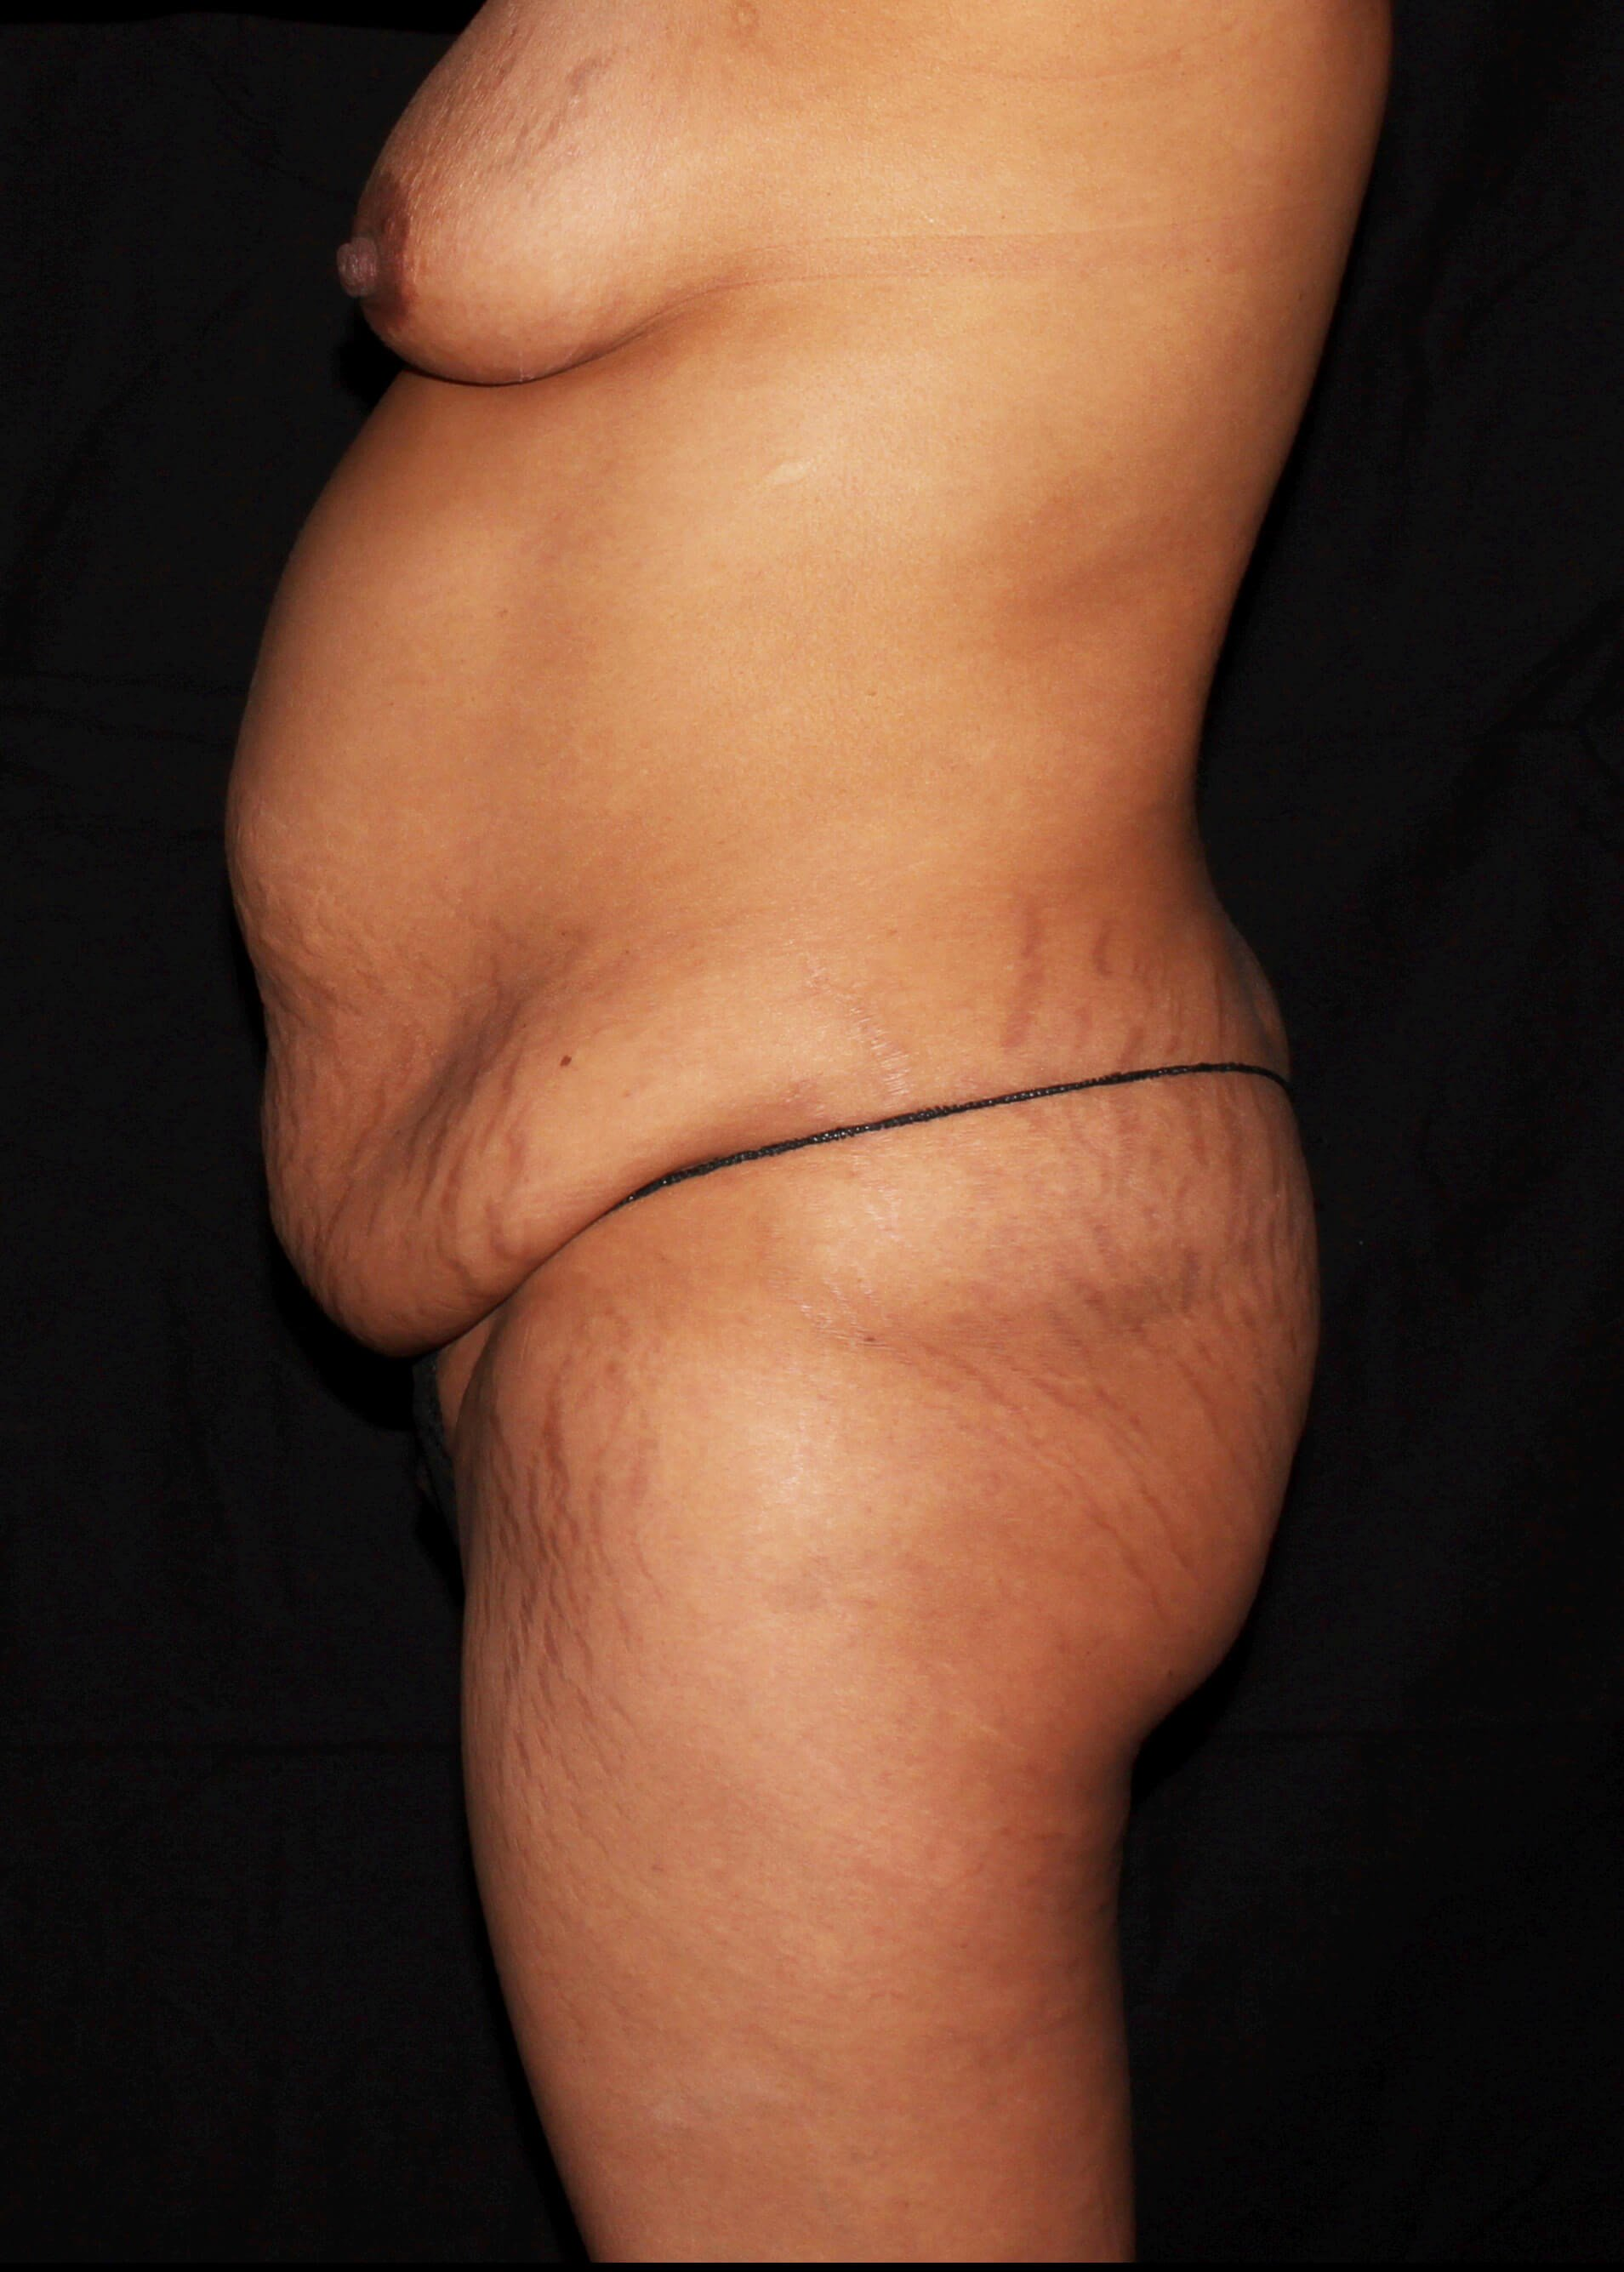 Breast Augmentation and Mommy Makeover Before - Left View